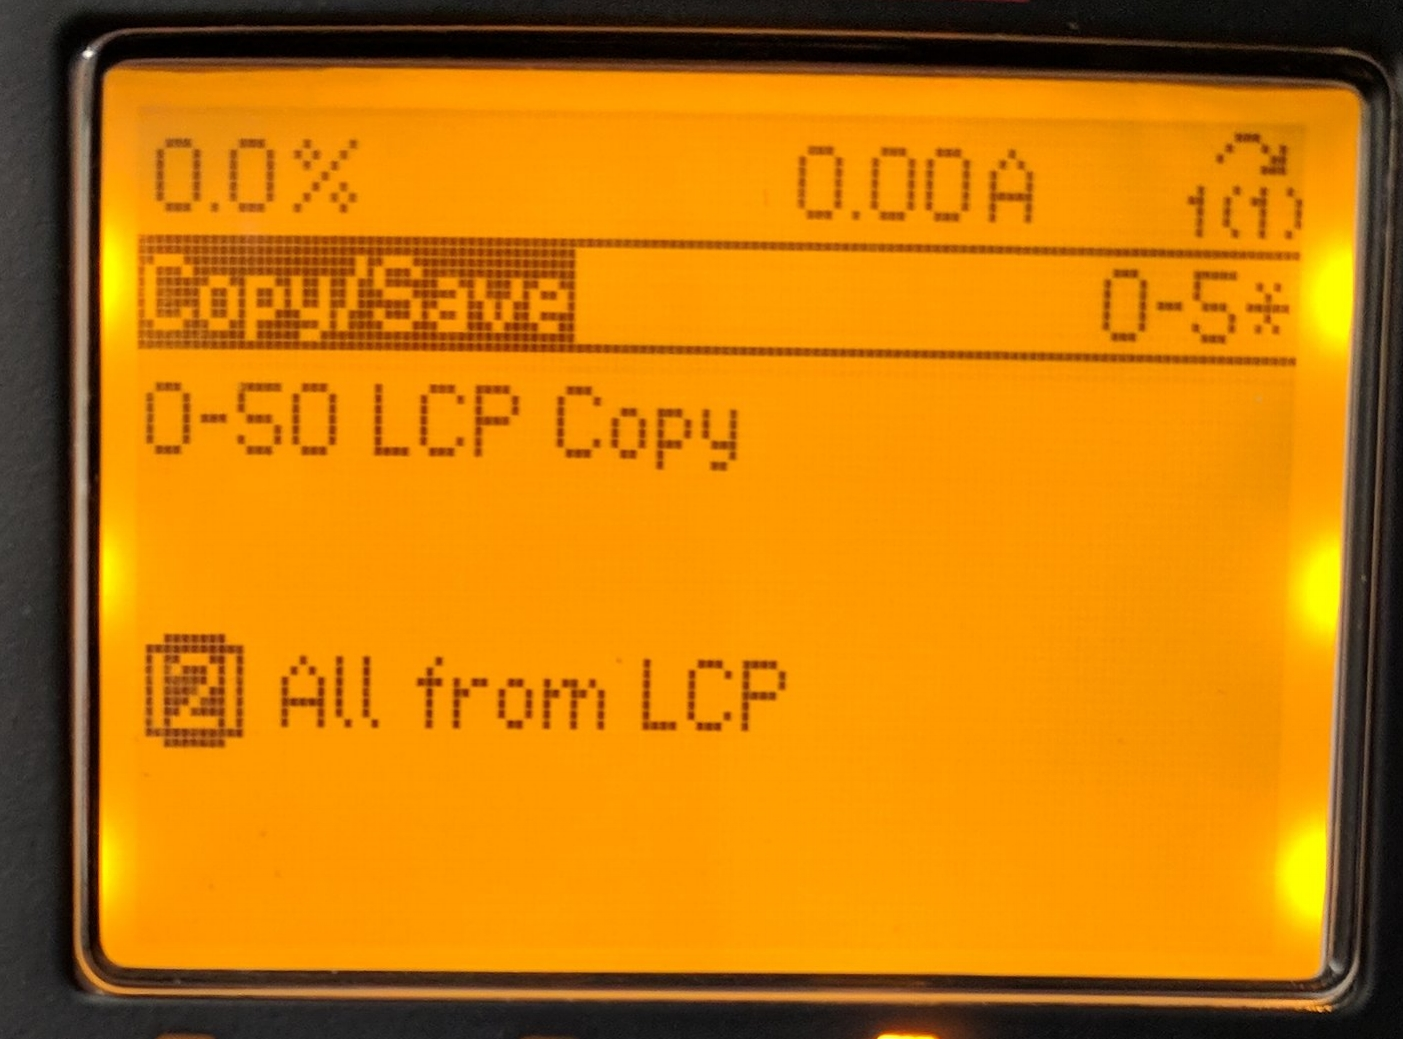 Copying FROM the Keypad into the drive